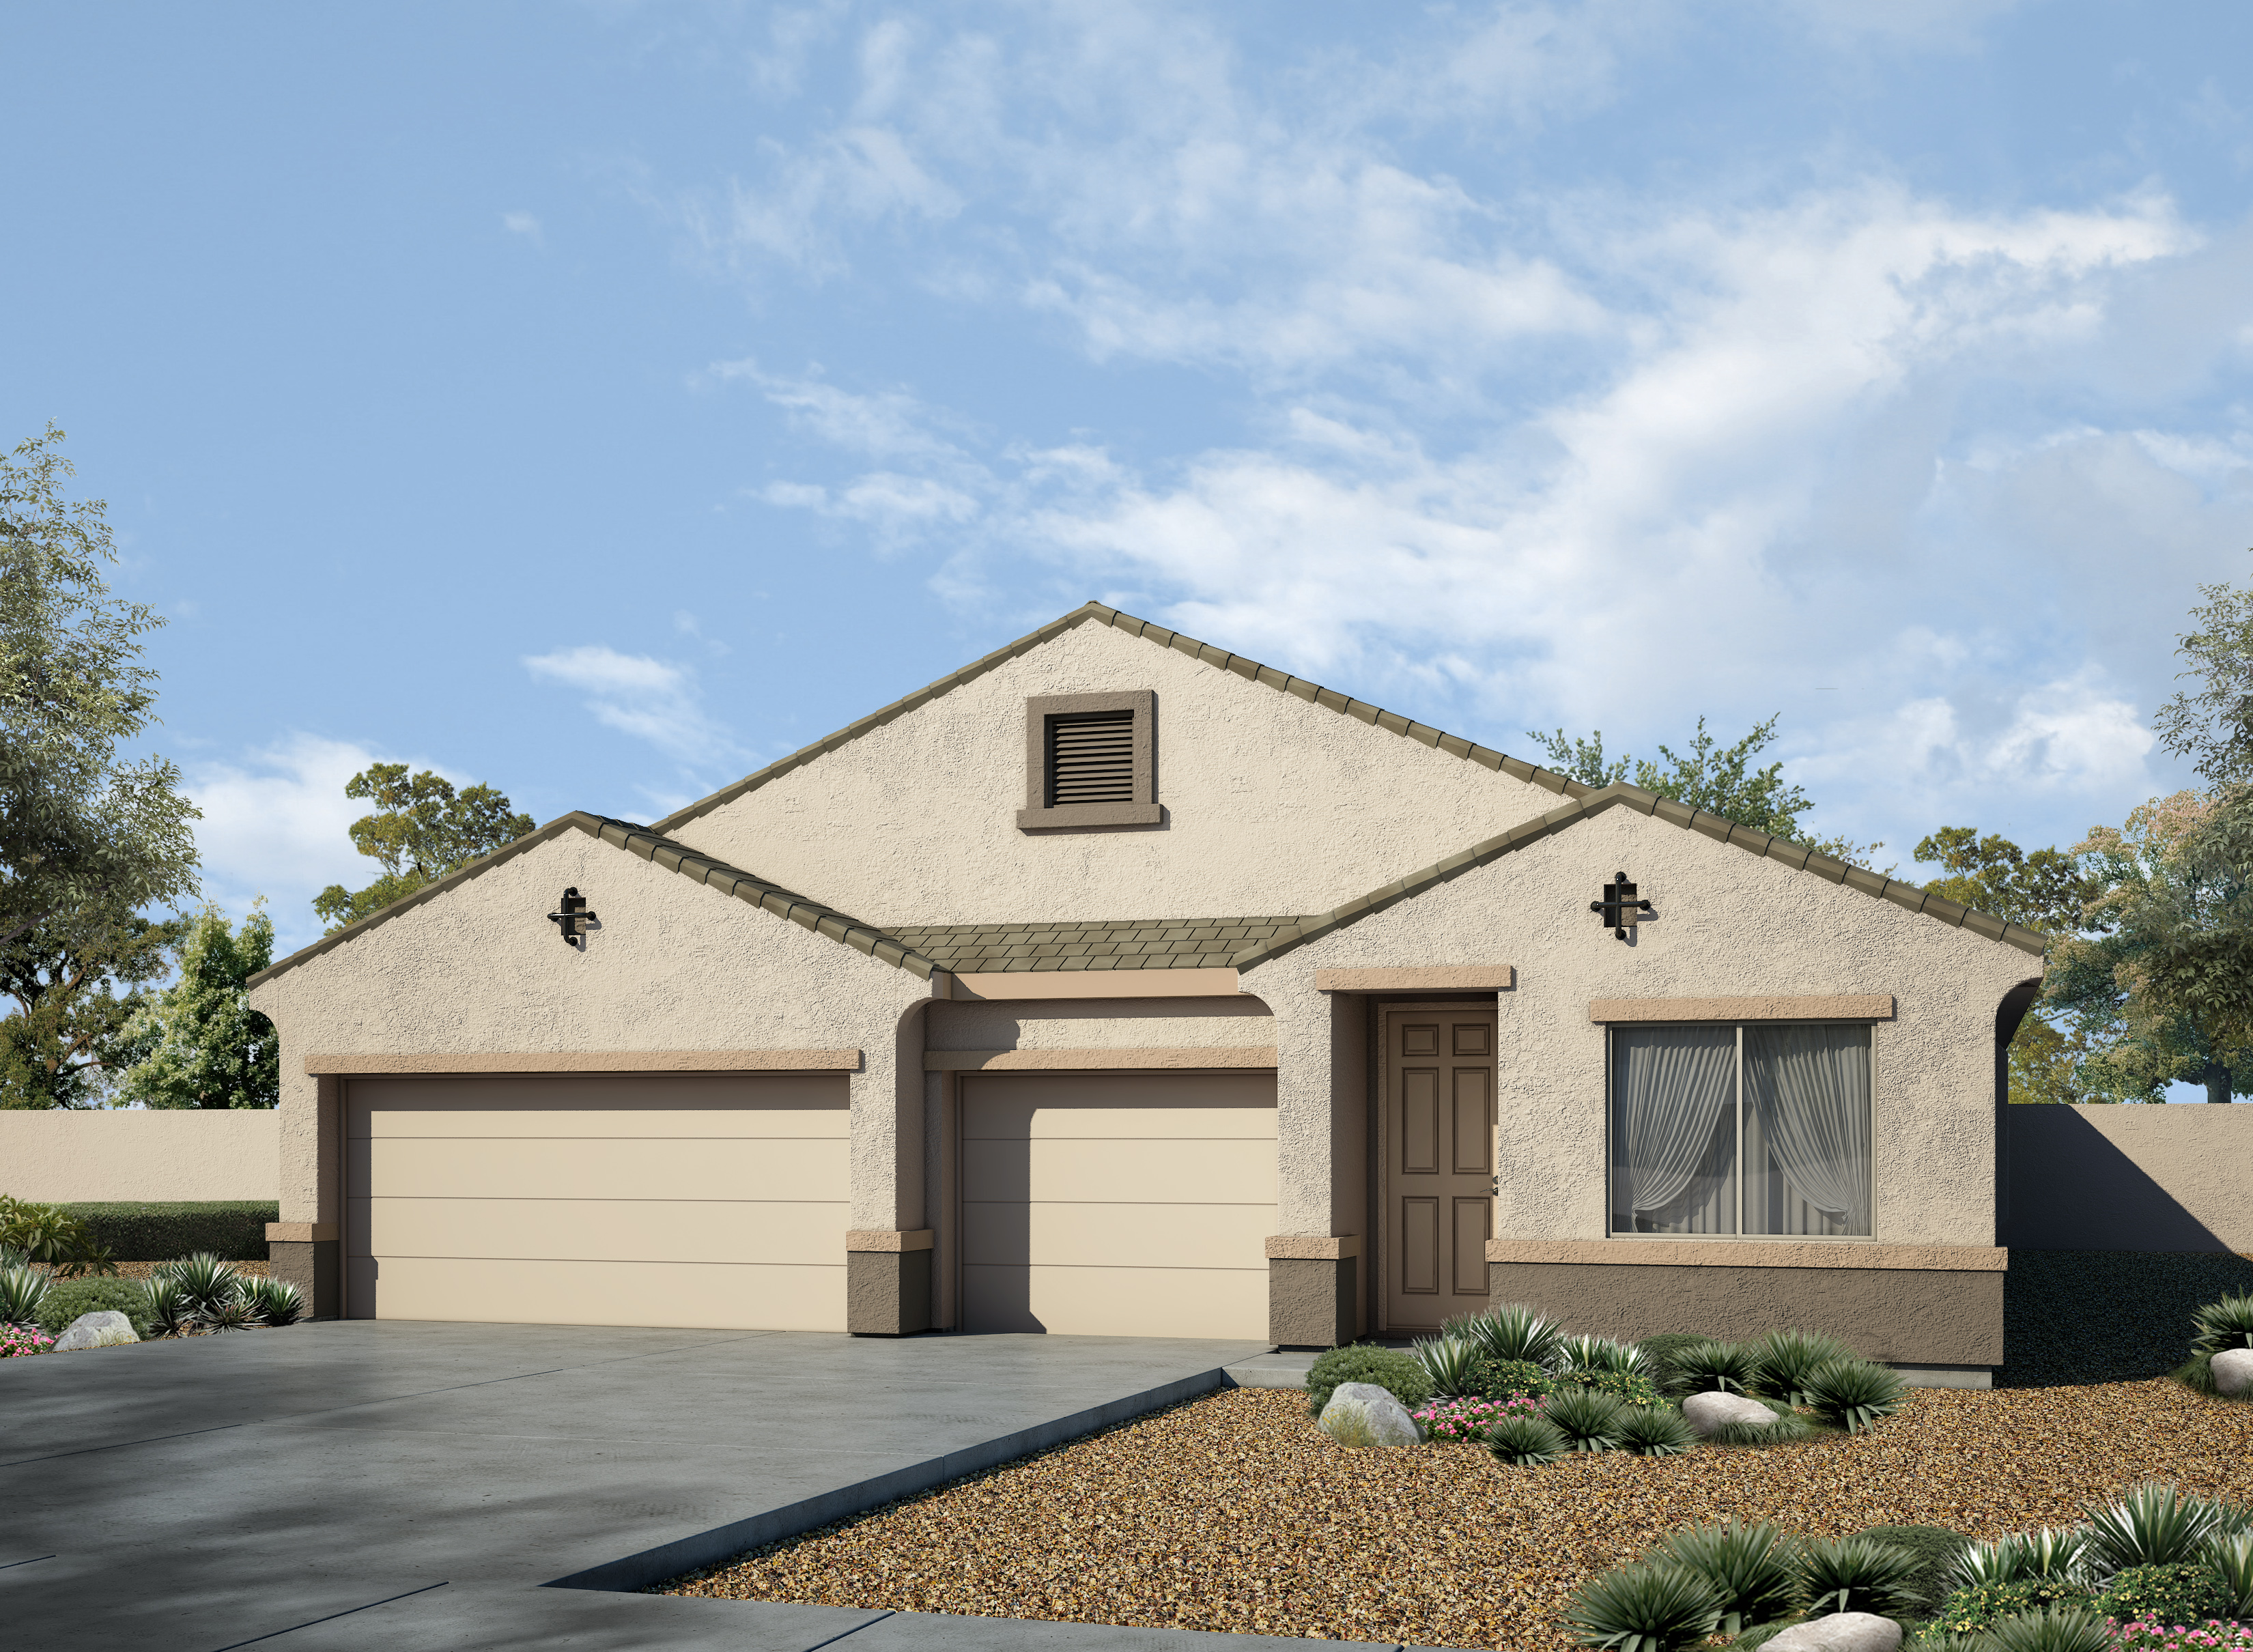 Cypress - Plan 4545 - Sycamore Vista